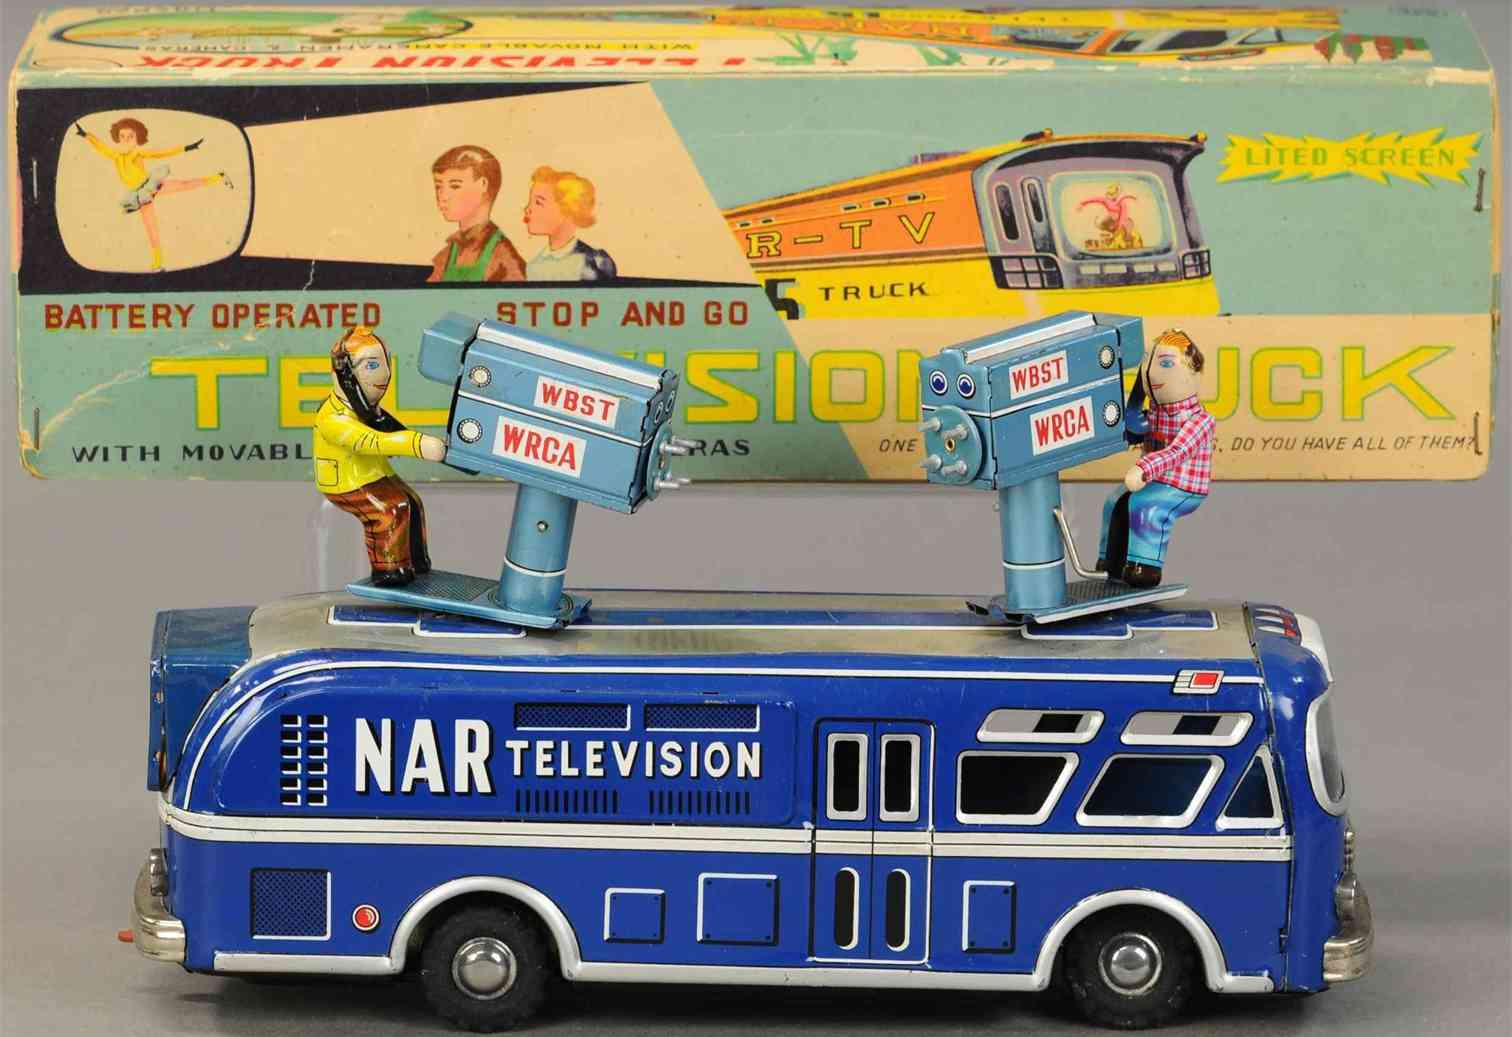 linemar tin toy nar television truck, battery operated 2 cameramen